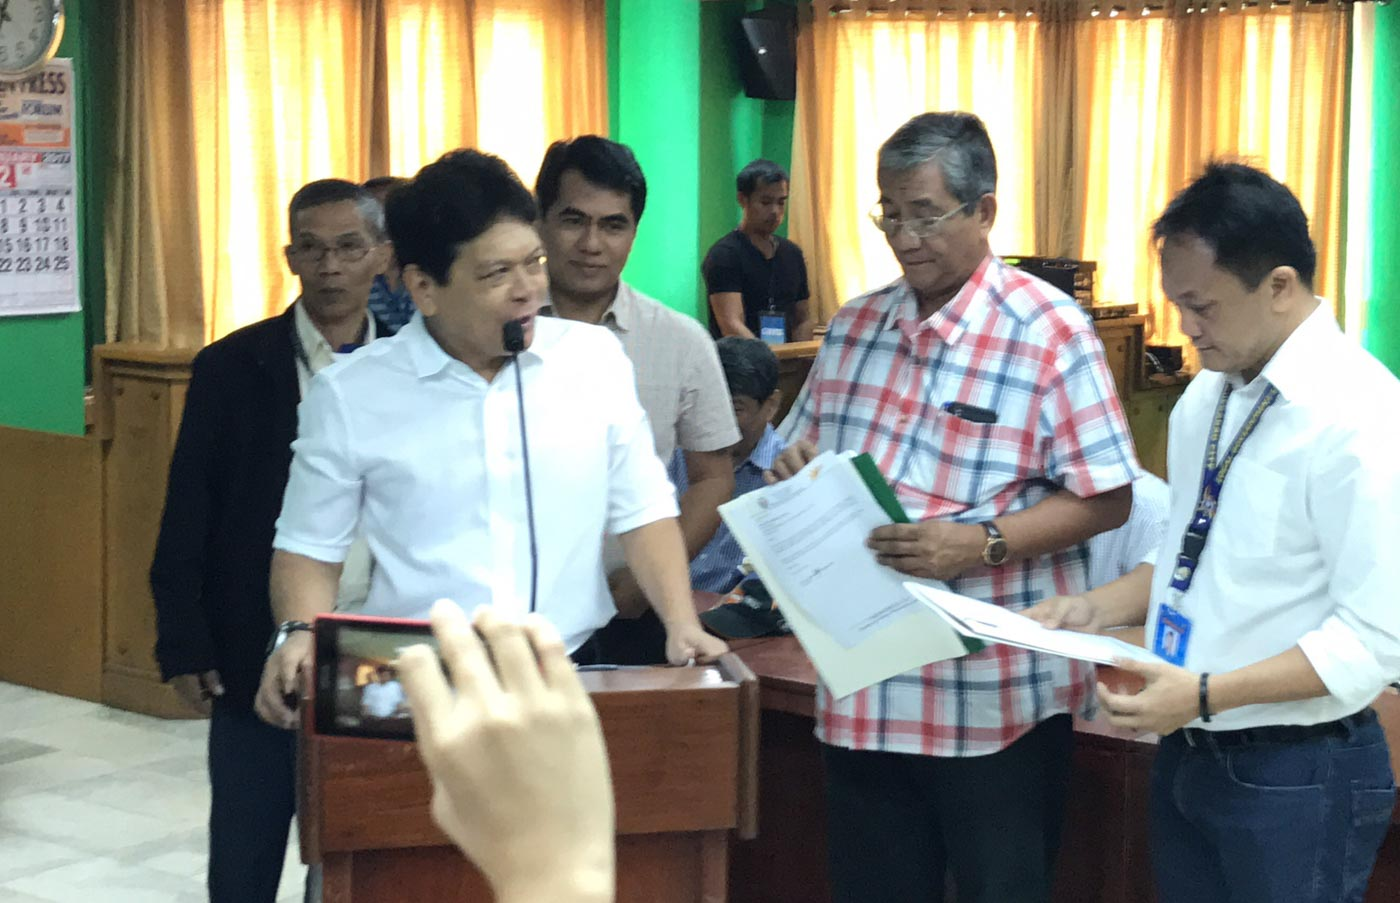 STEPPING DOWN. Tuguegarao Mayor Jefferson Soriano on February 10, 2017 relinquished his post to Vice Mayor Benben de Guzman, after being dismissed by the Ombudsman. Photo by Raymon Dullana/Rappler